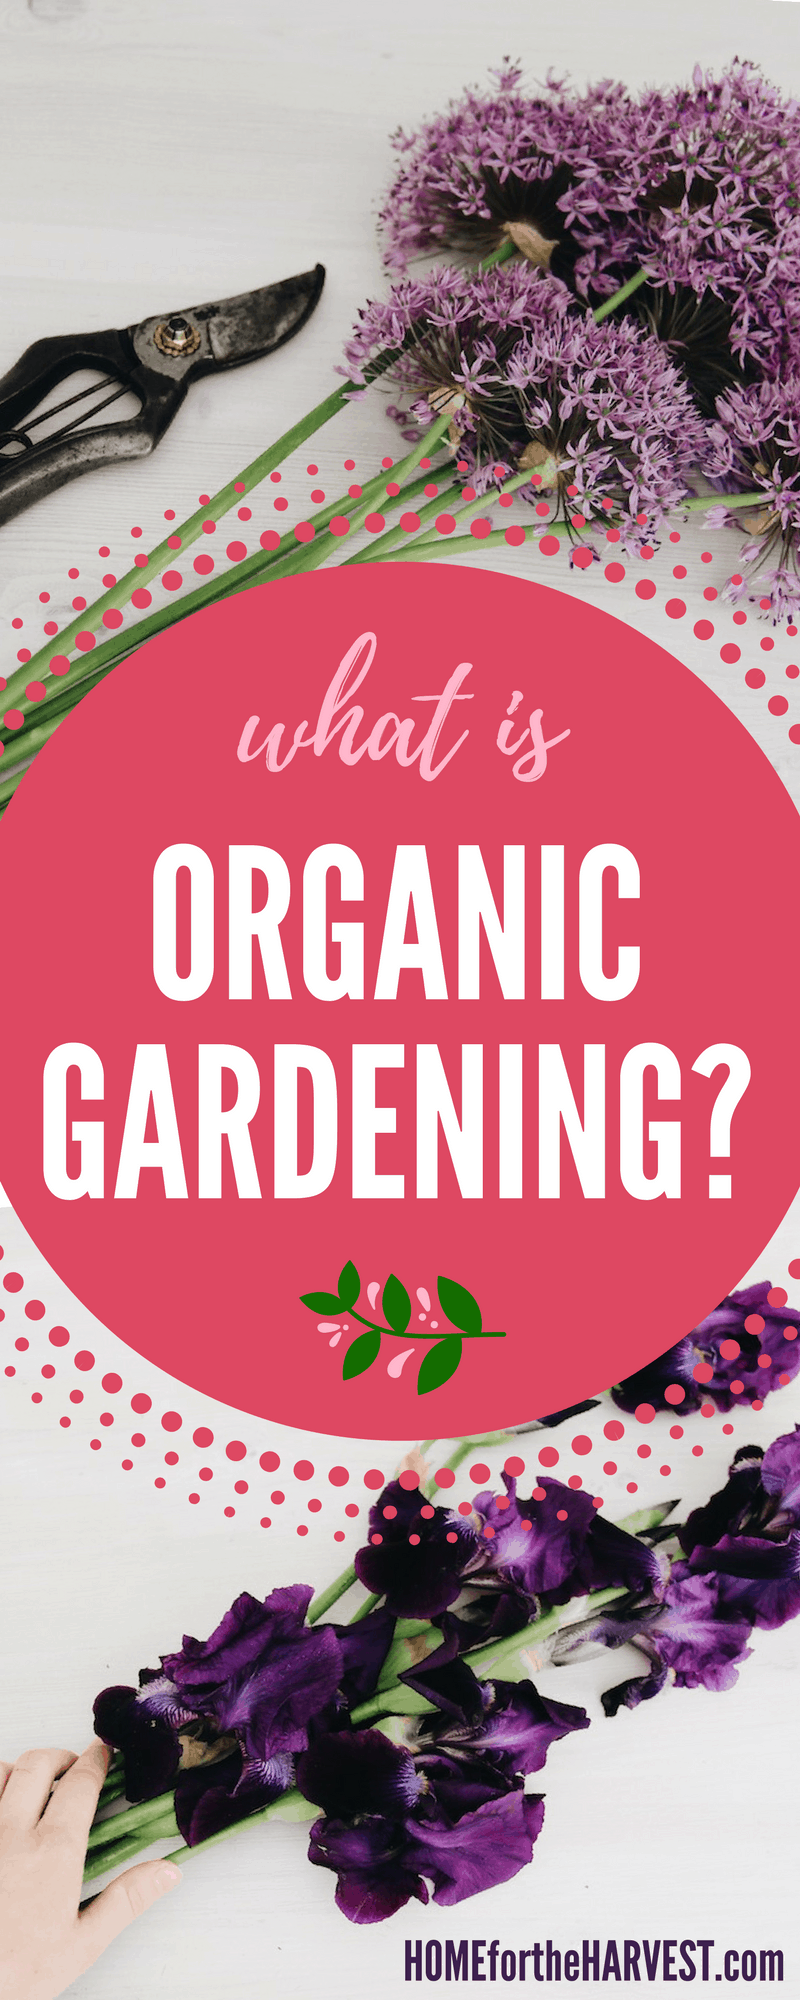 "Wondering ""What is Organic Gardening!?"" This article explains how organic gardening is different than conventional gardening, as well as reasons why organic gardening is wonderful! 